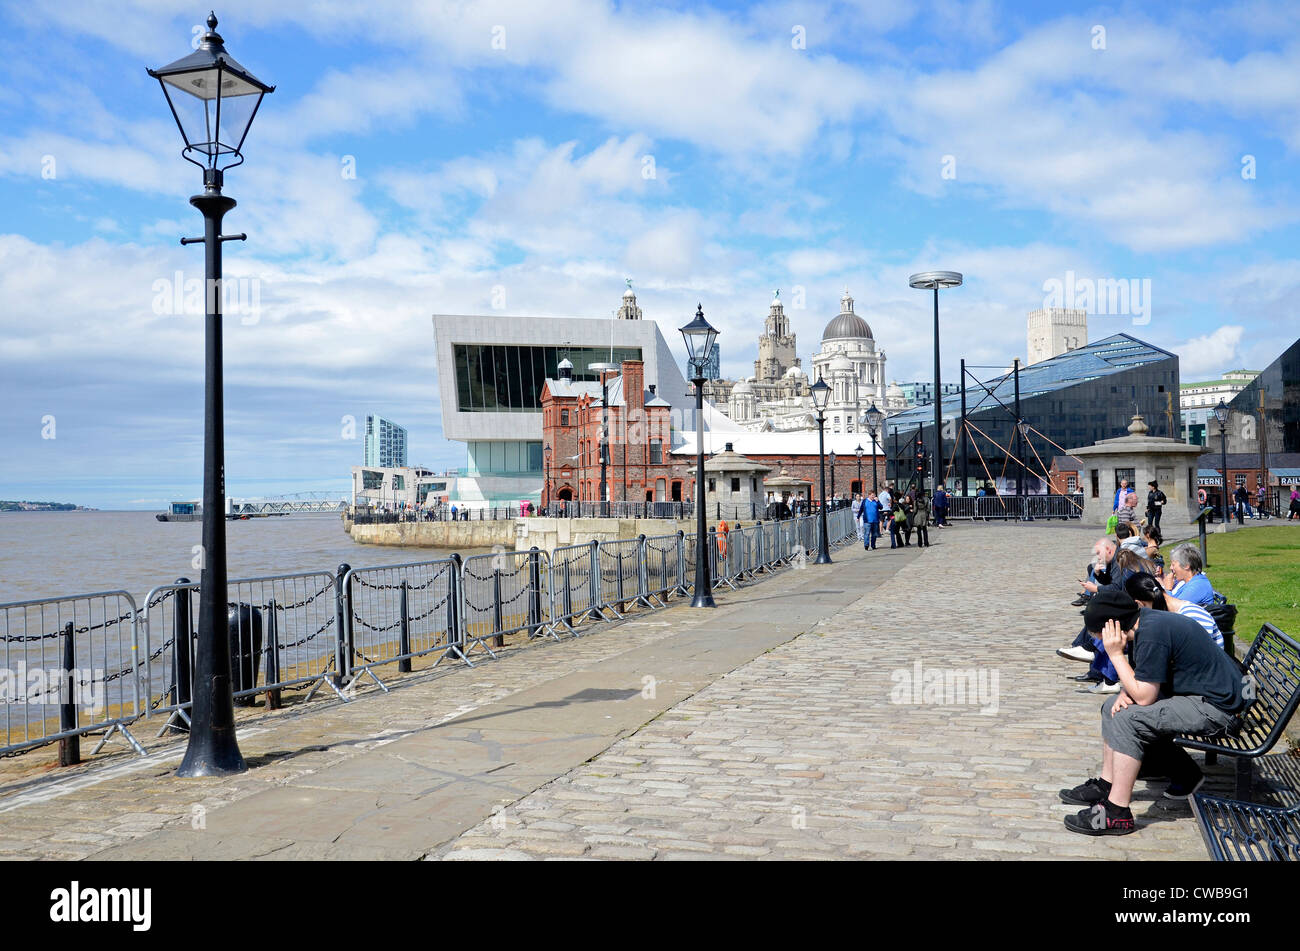 People relaxing on the Waterfront by the river Mersey in Liverpool, England, UK - Stock Image